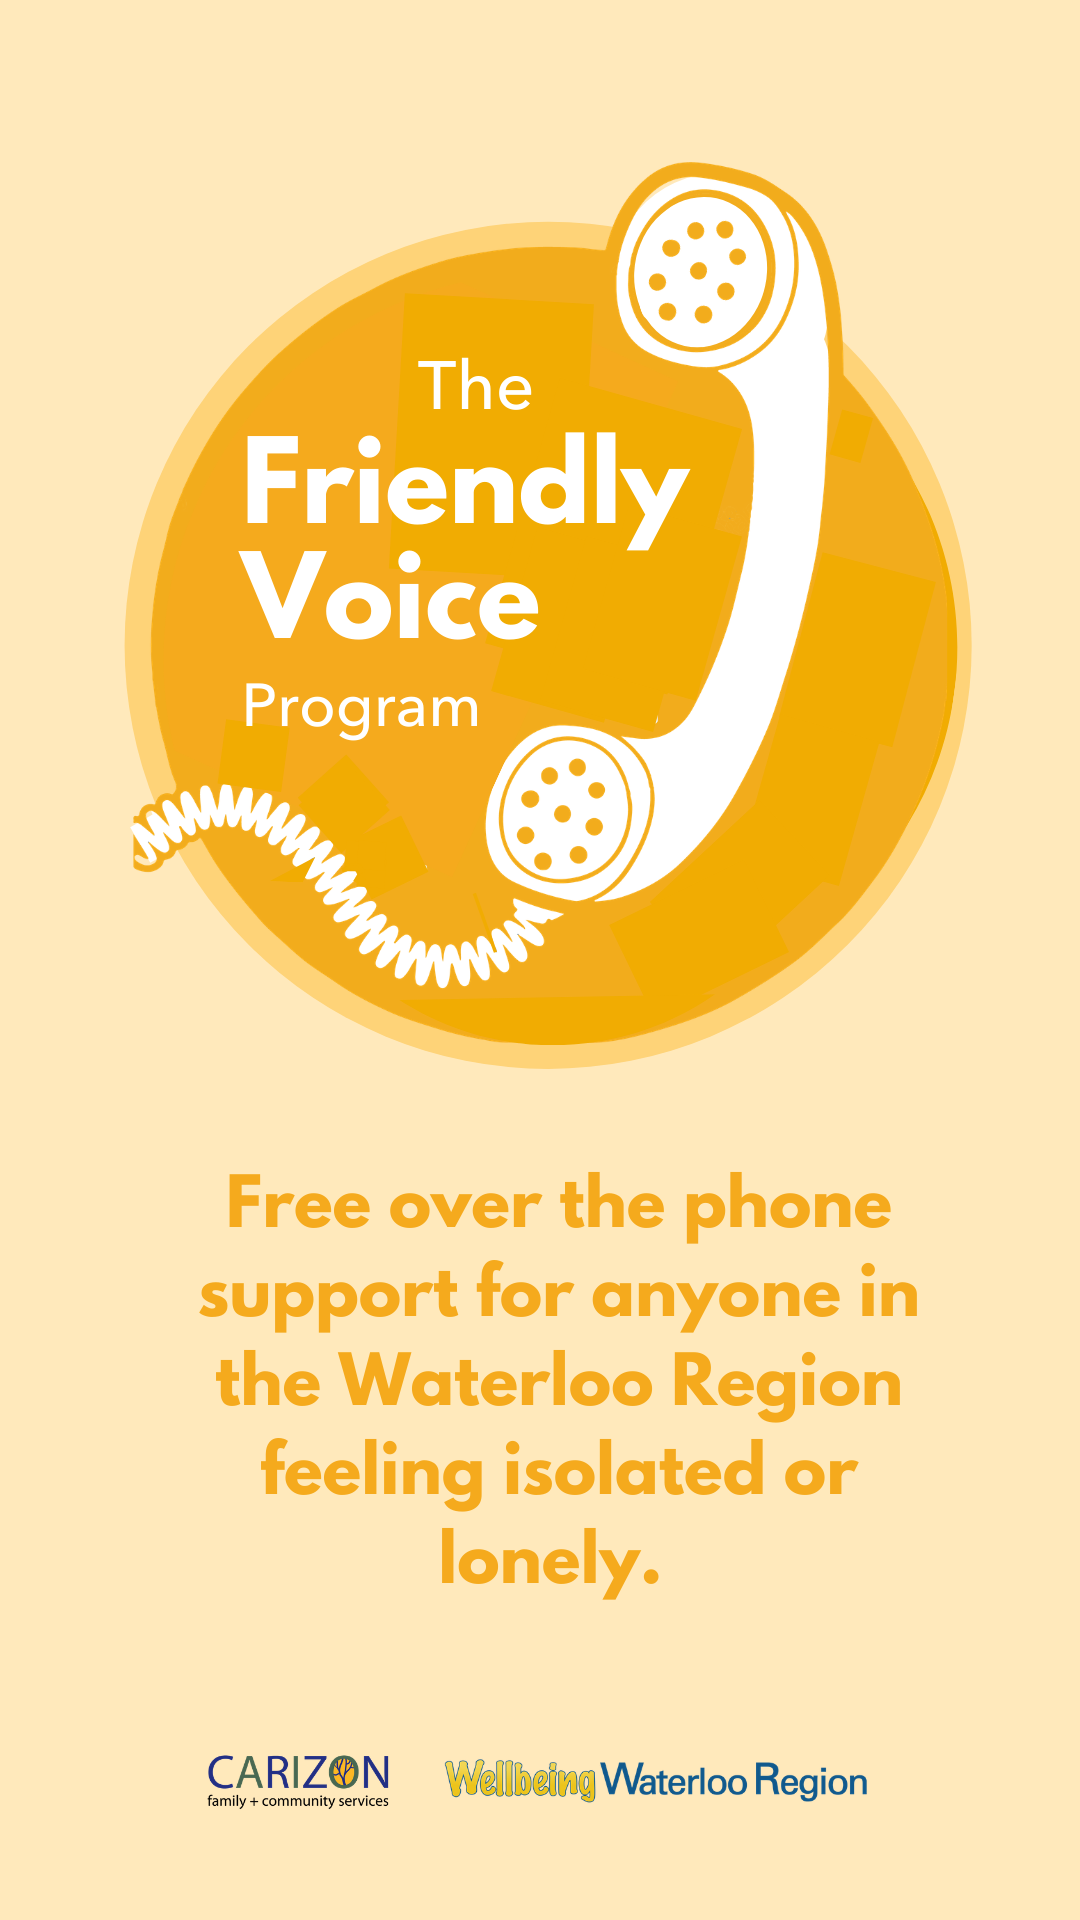 Carizon's New Friendly Voice Program